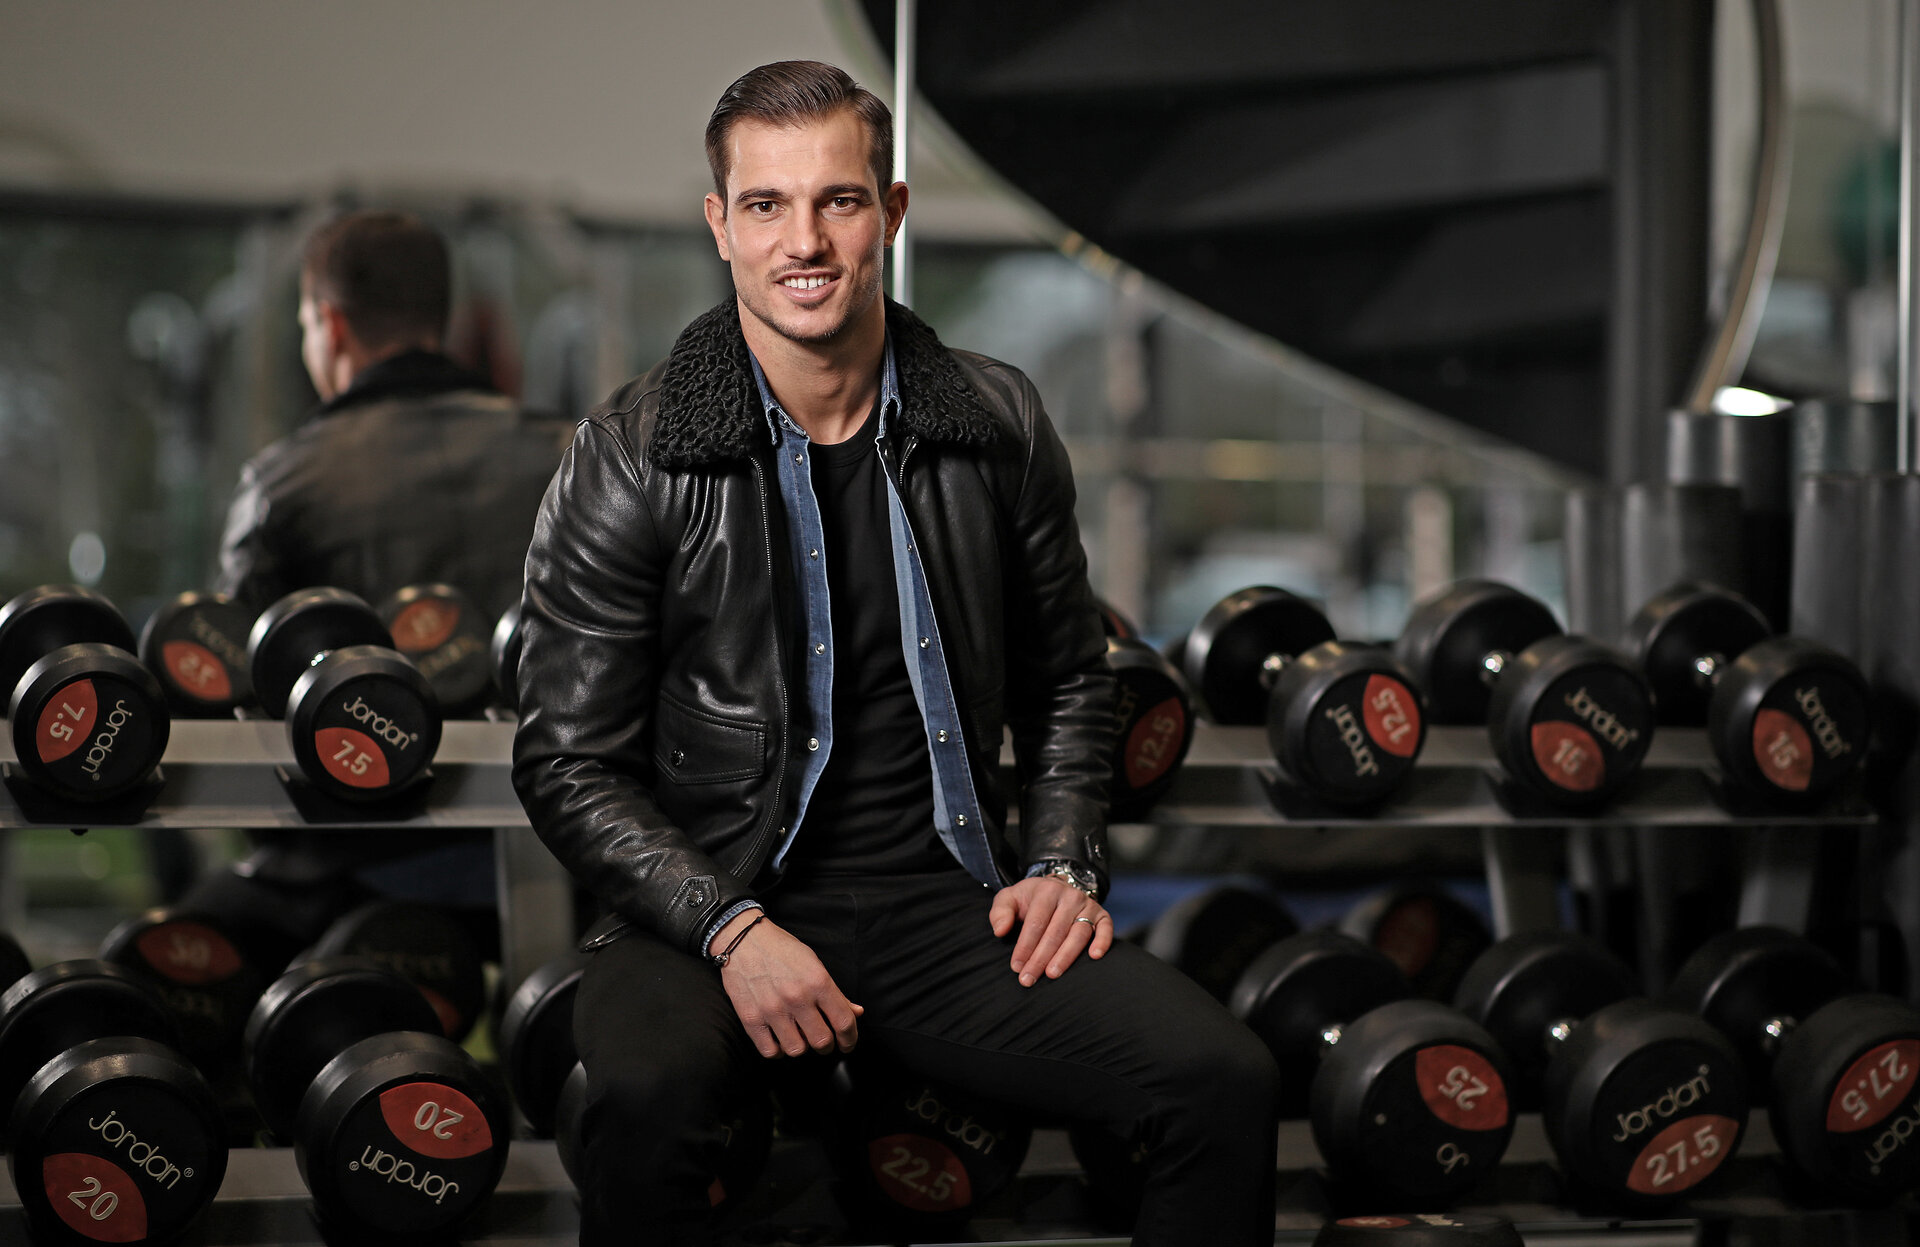 SOUTHAMPTON, ENGLAND - JANUARY 16: Cedric Soares of Southampton FC pictured for the Saints match day magazine at the Staplewood Campus on January 16, 2020 in Southampton, England. (Photo by Matt Watson/Southampton FC via Getty Images)